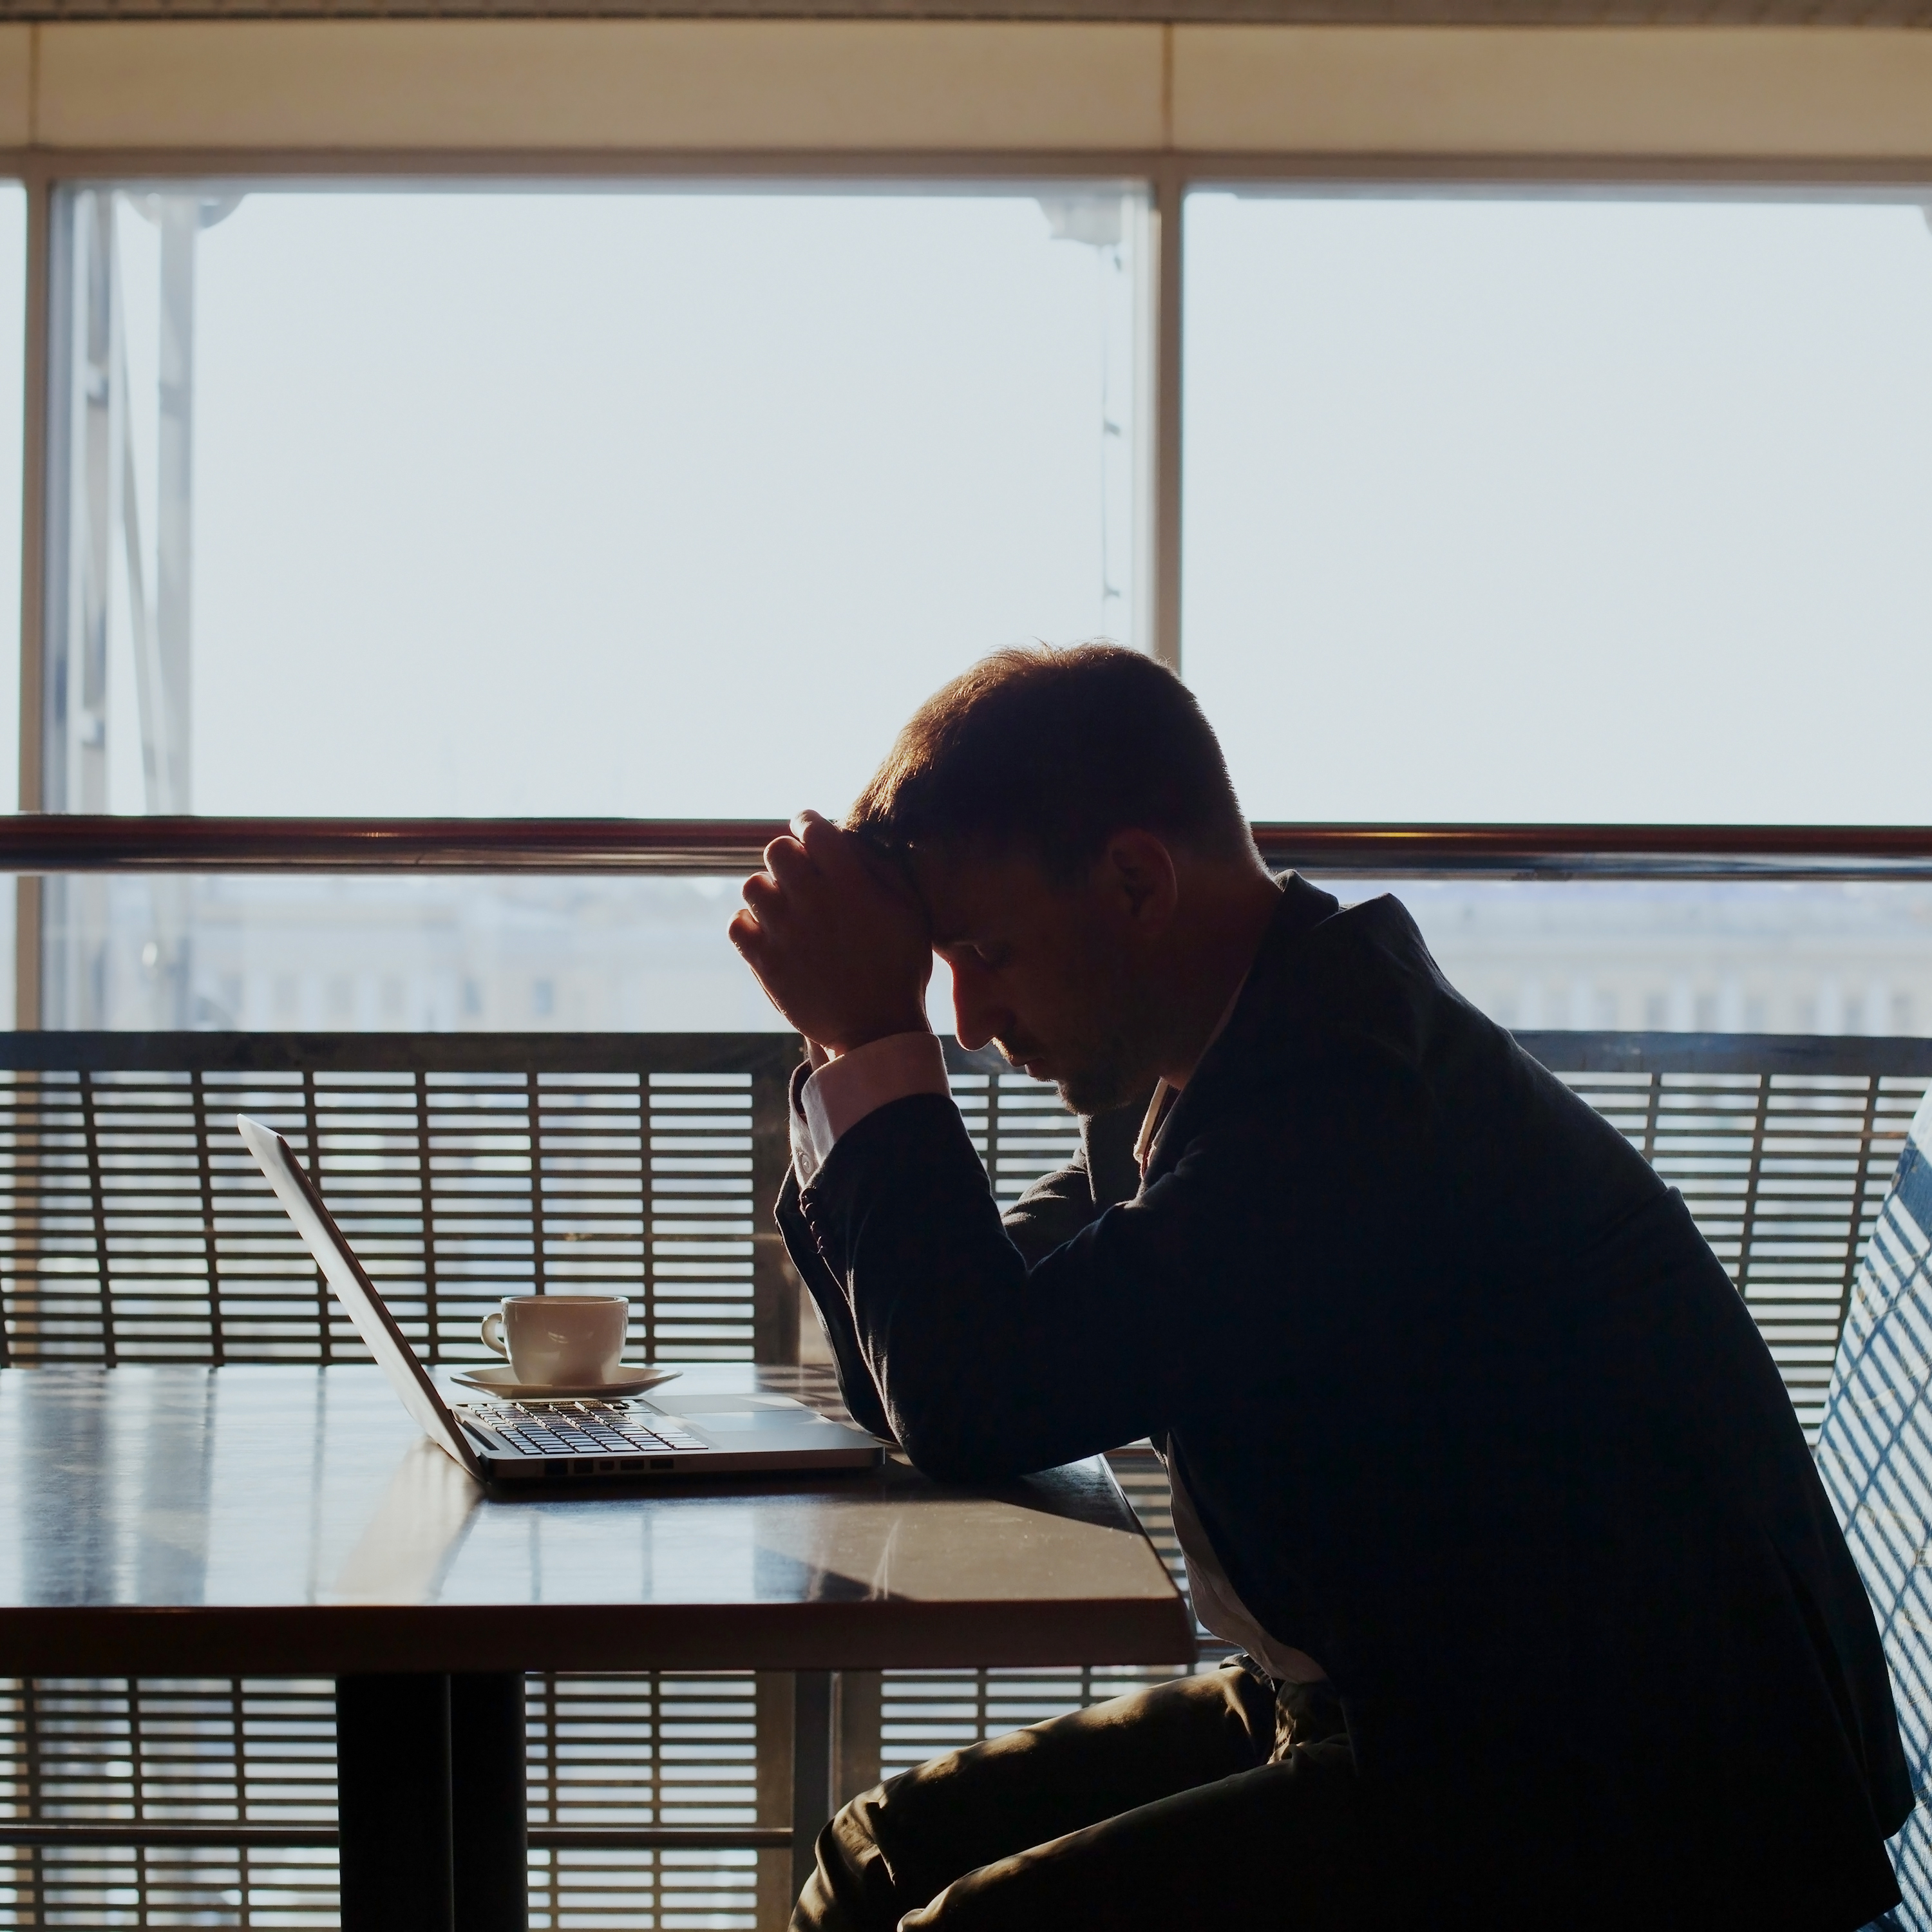 unemployed people undergo changes in personality making them less